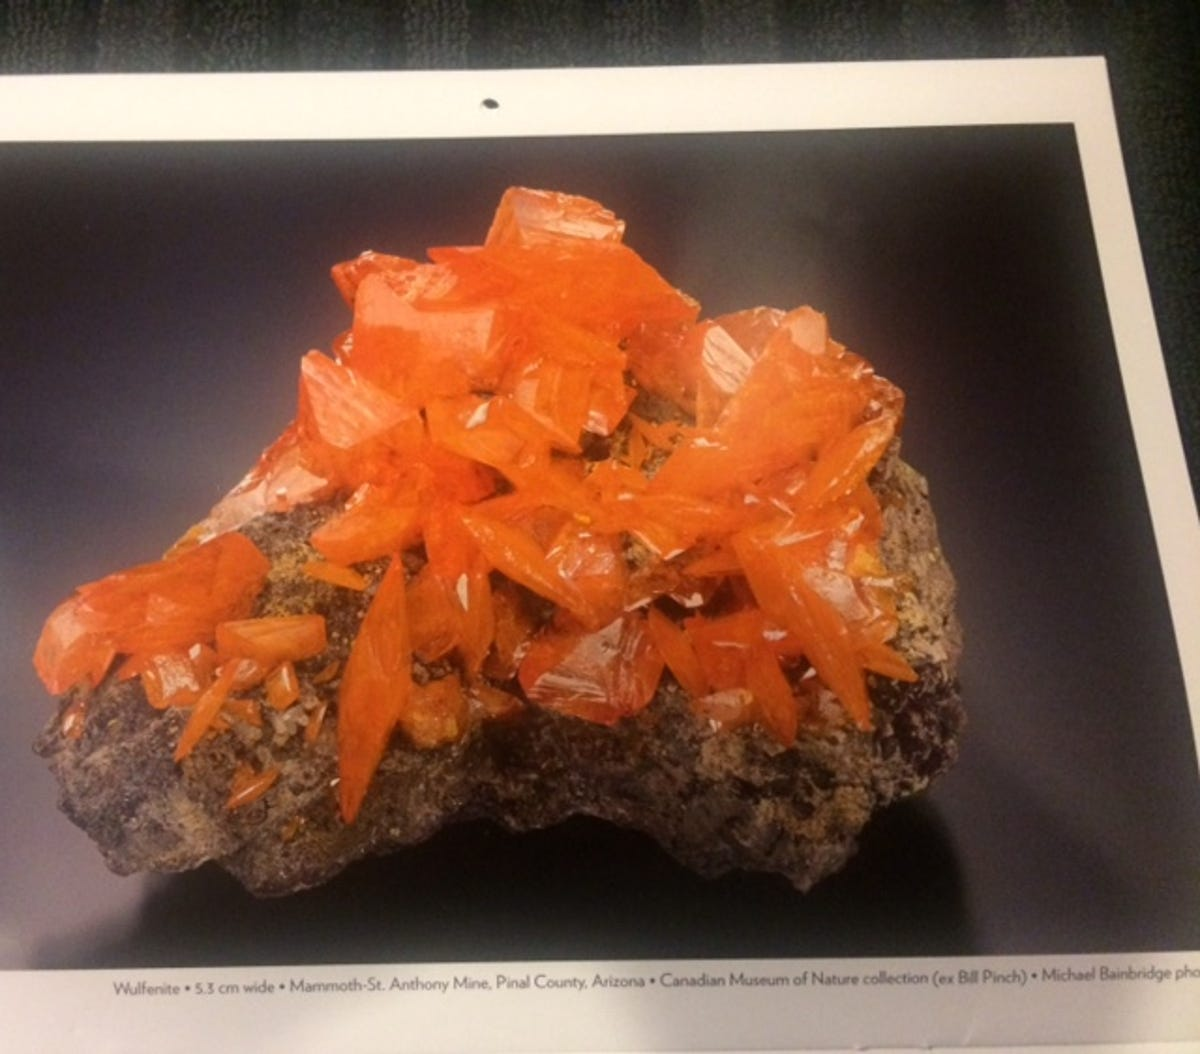 Wulfenite is on track for official Arizona mineral